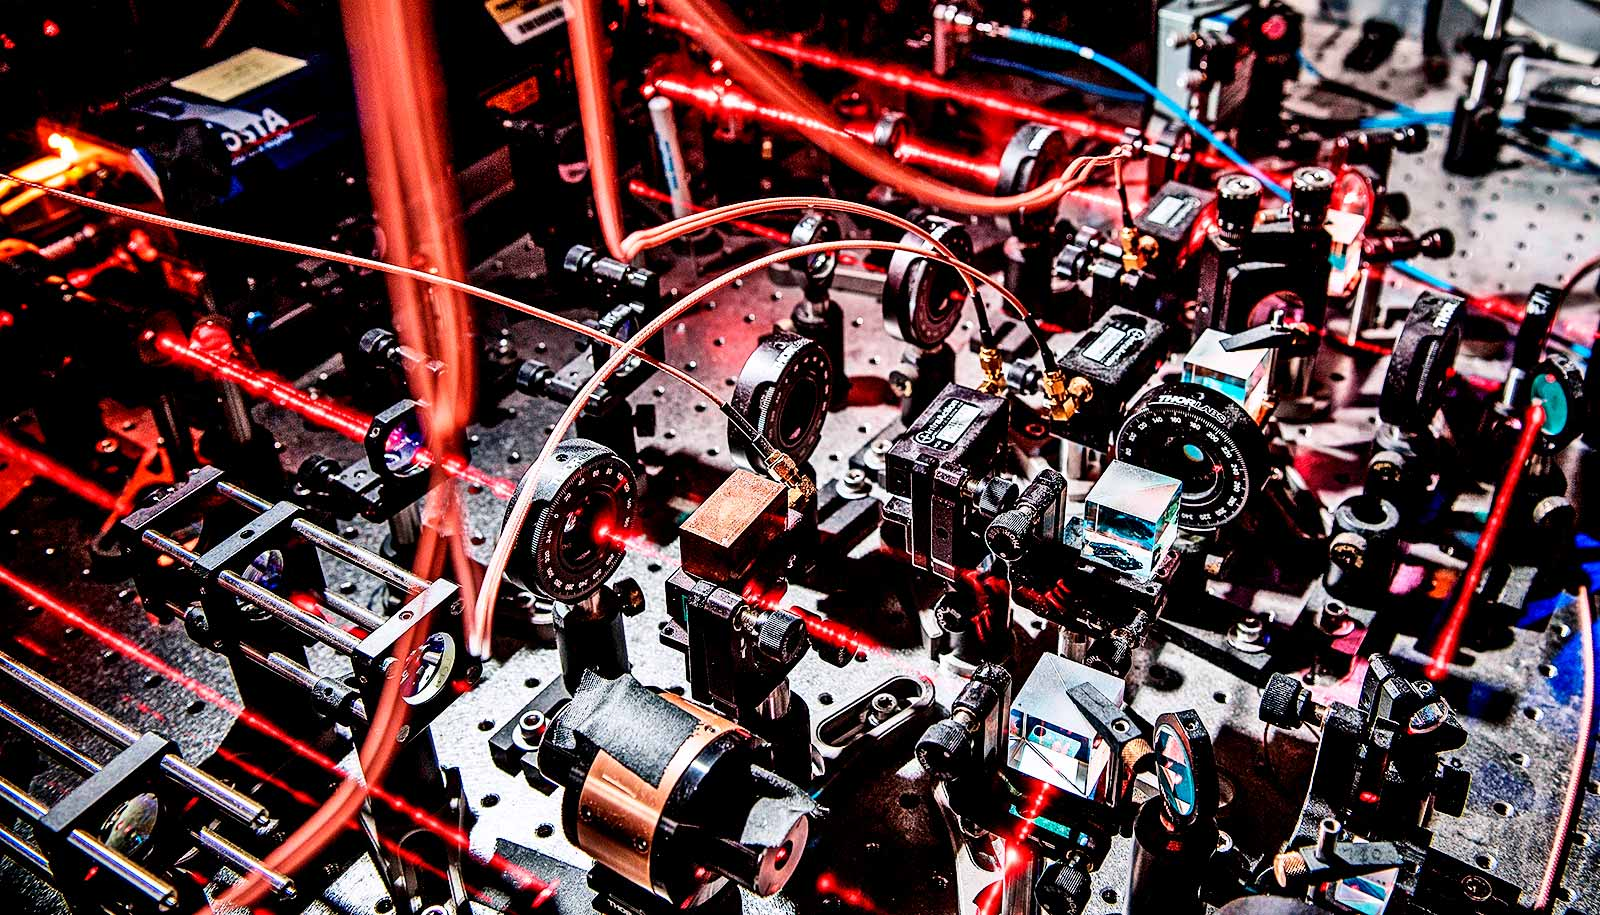 'Mini quantum collider' may lead to better spintronics